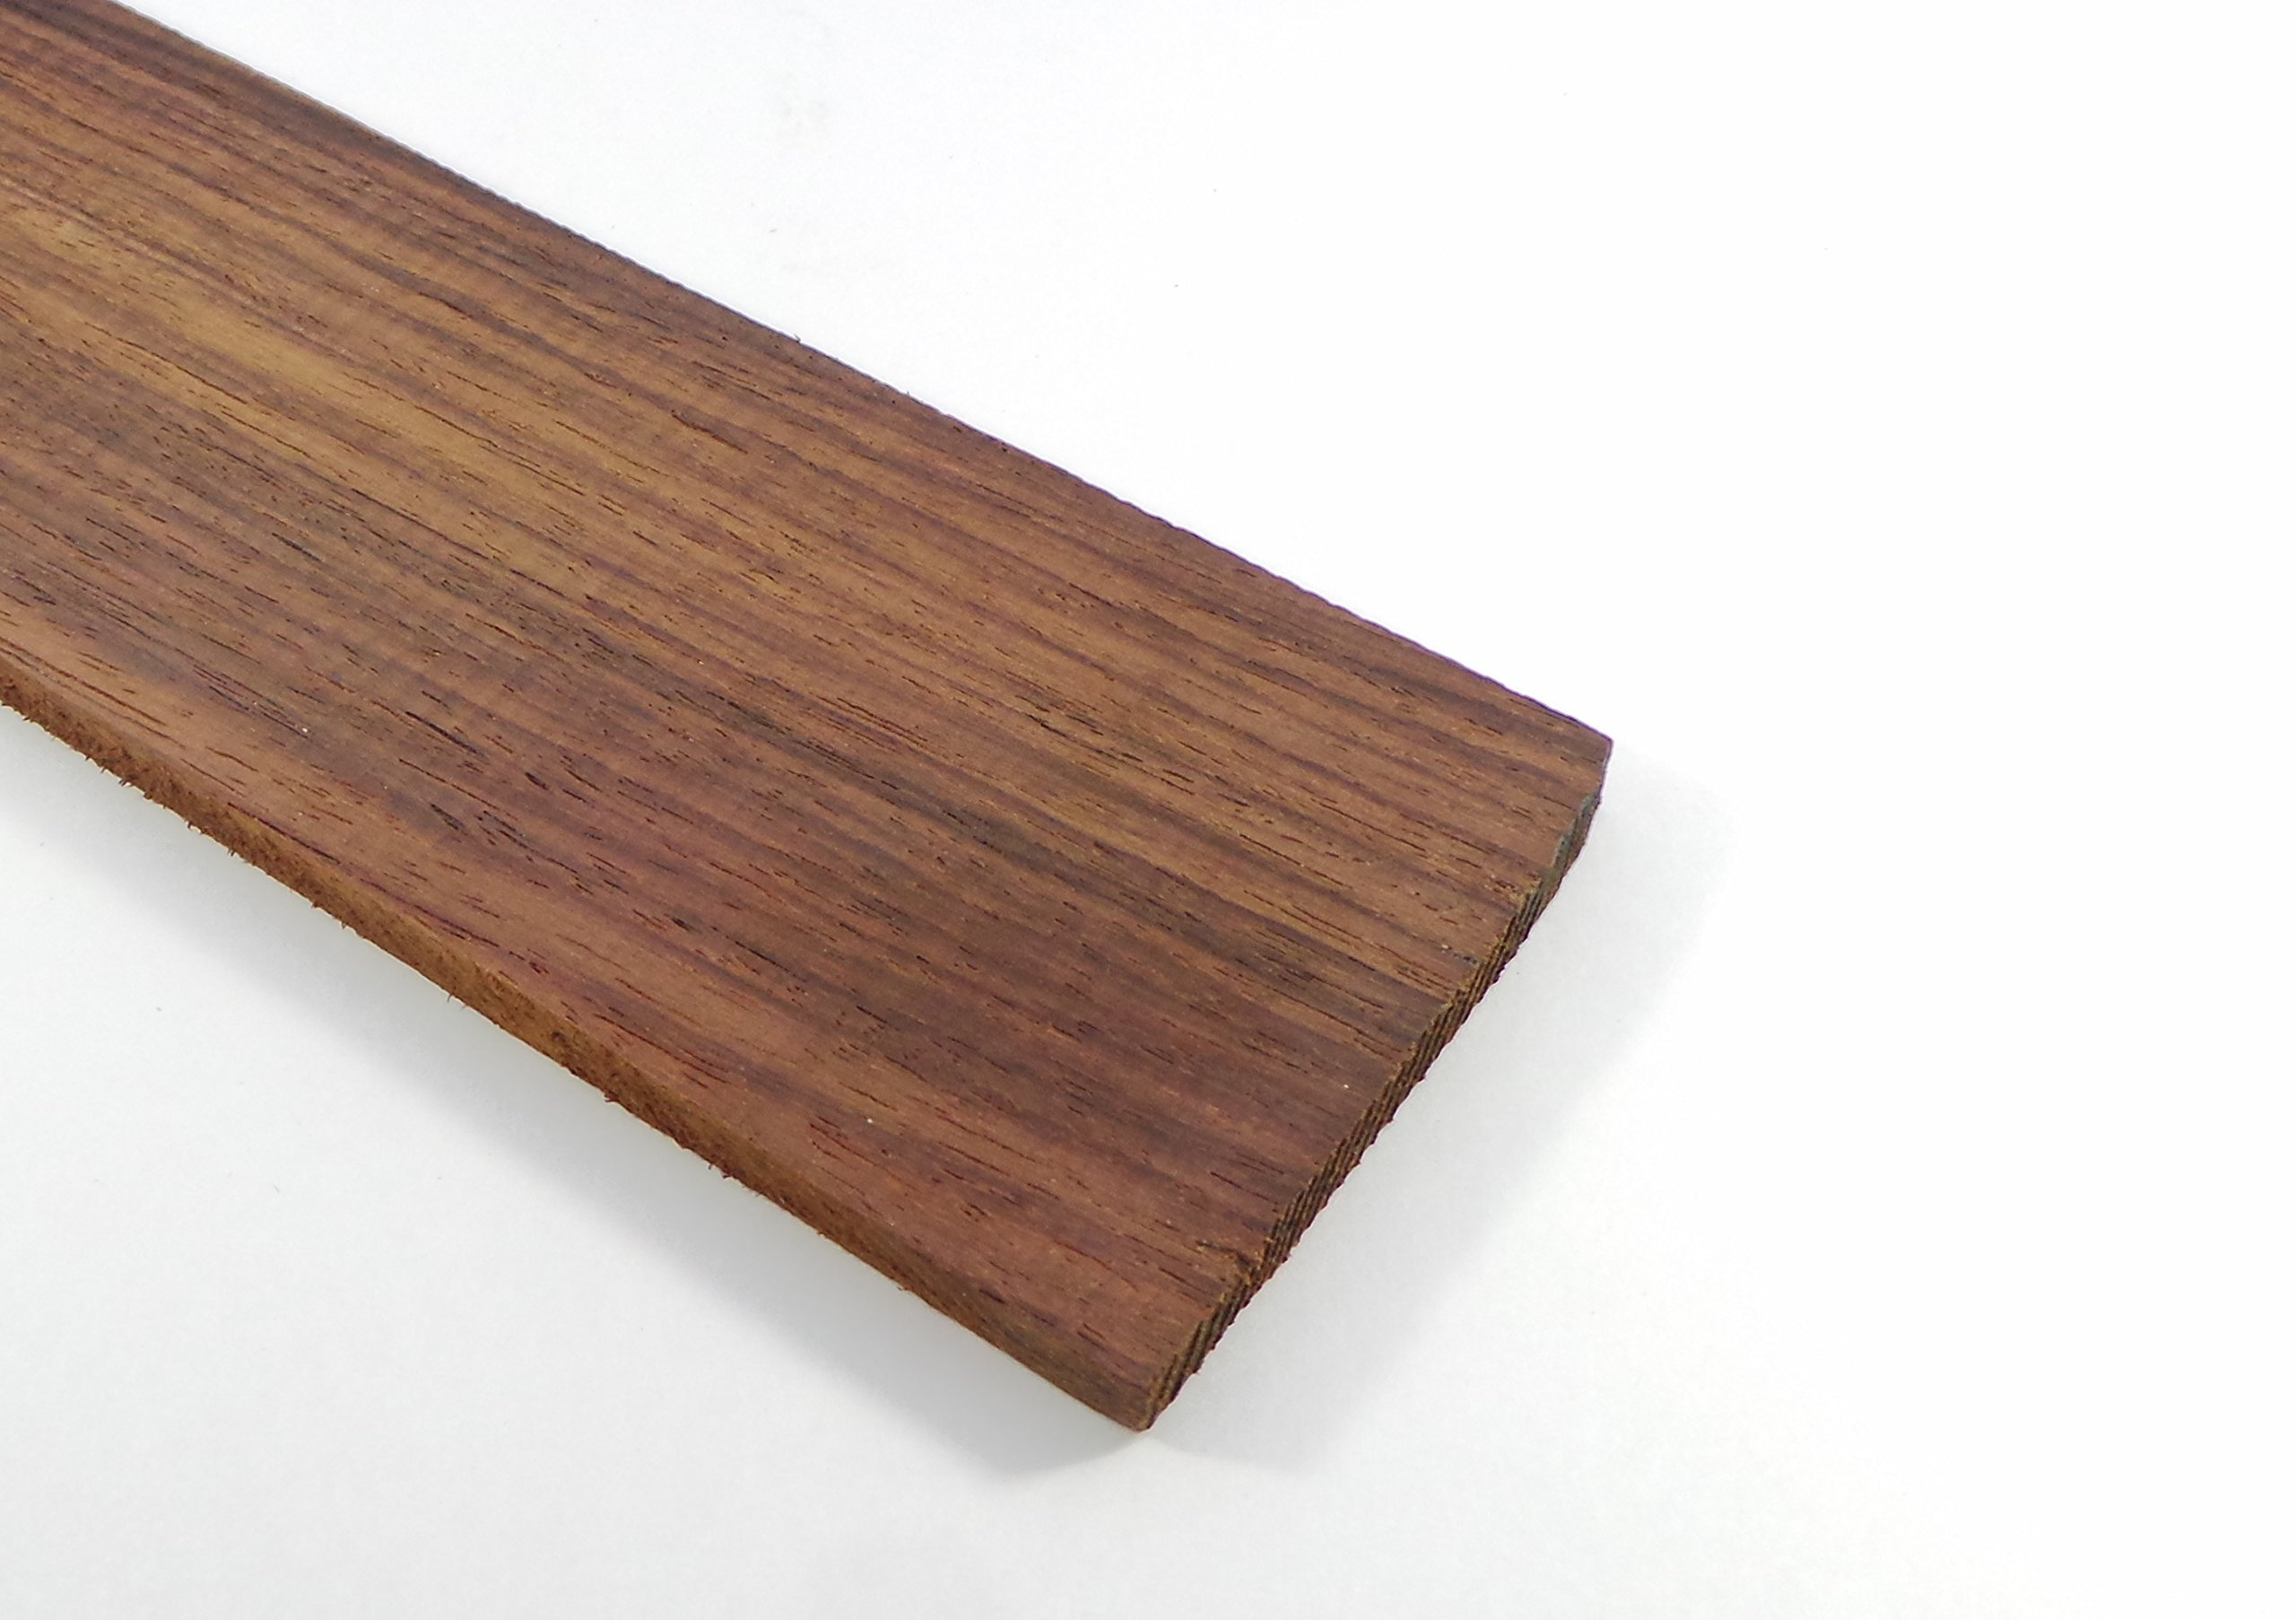 Unslotted Fingerboard for Guitars - Rosewood